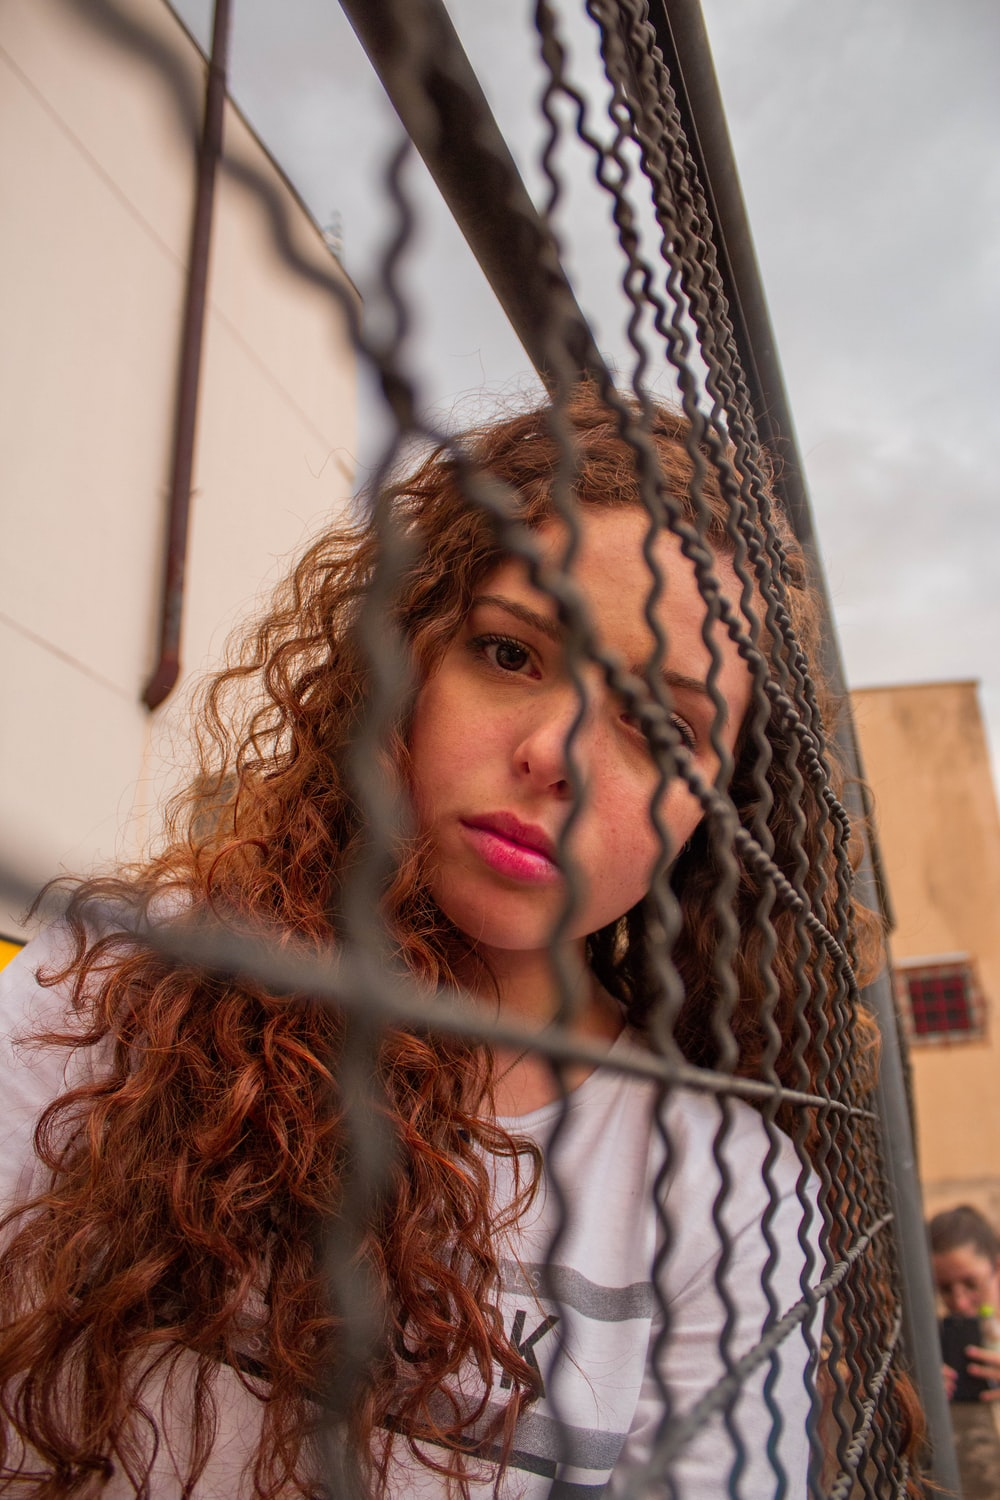 woman in white shirt leaning on brown metal fence during daytime